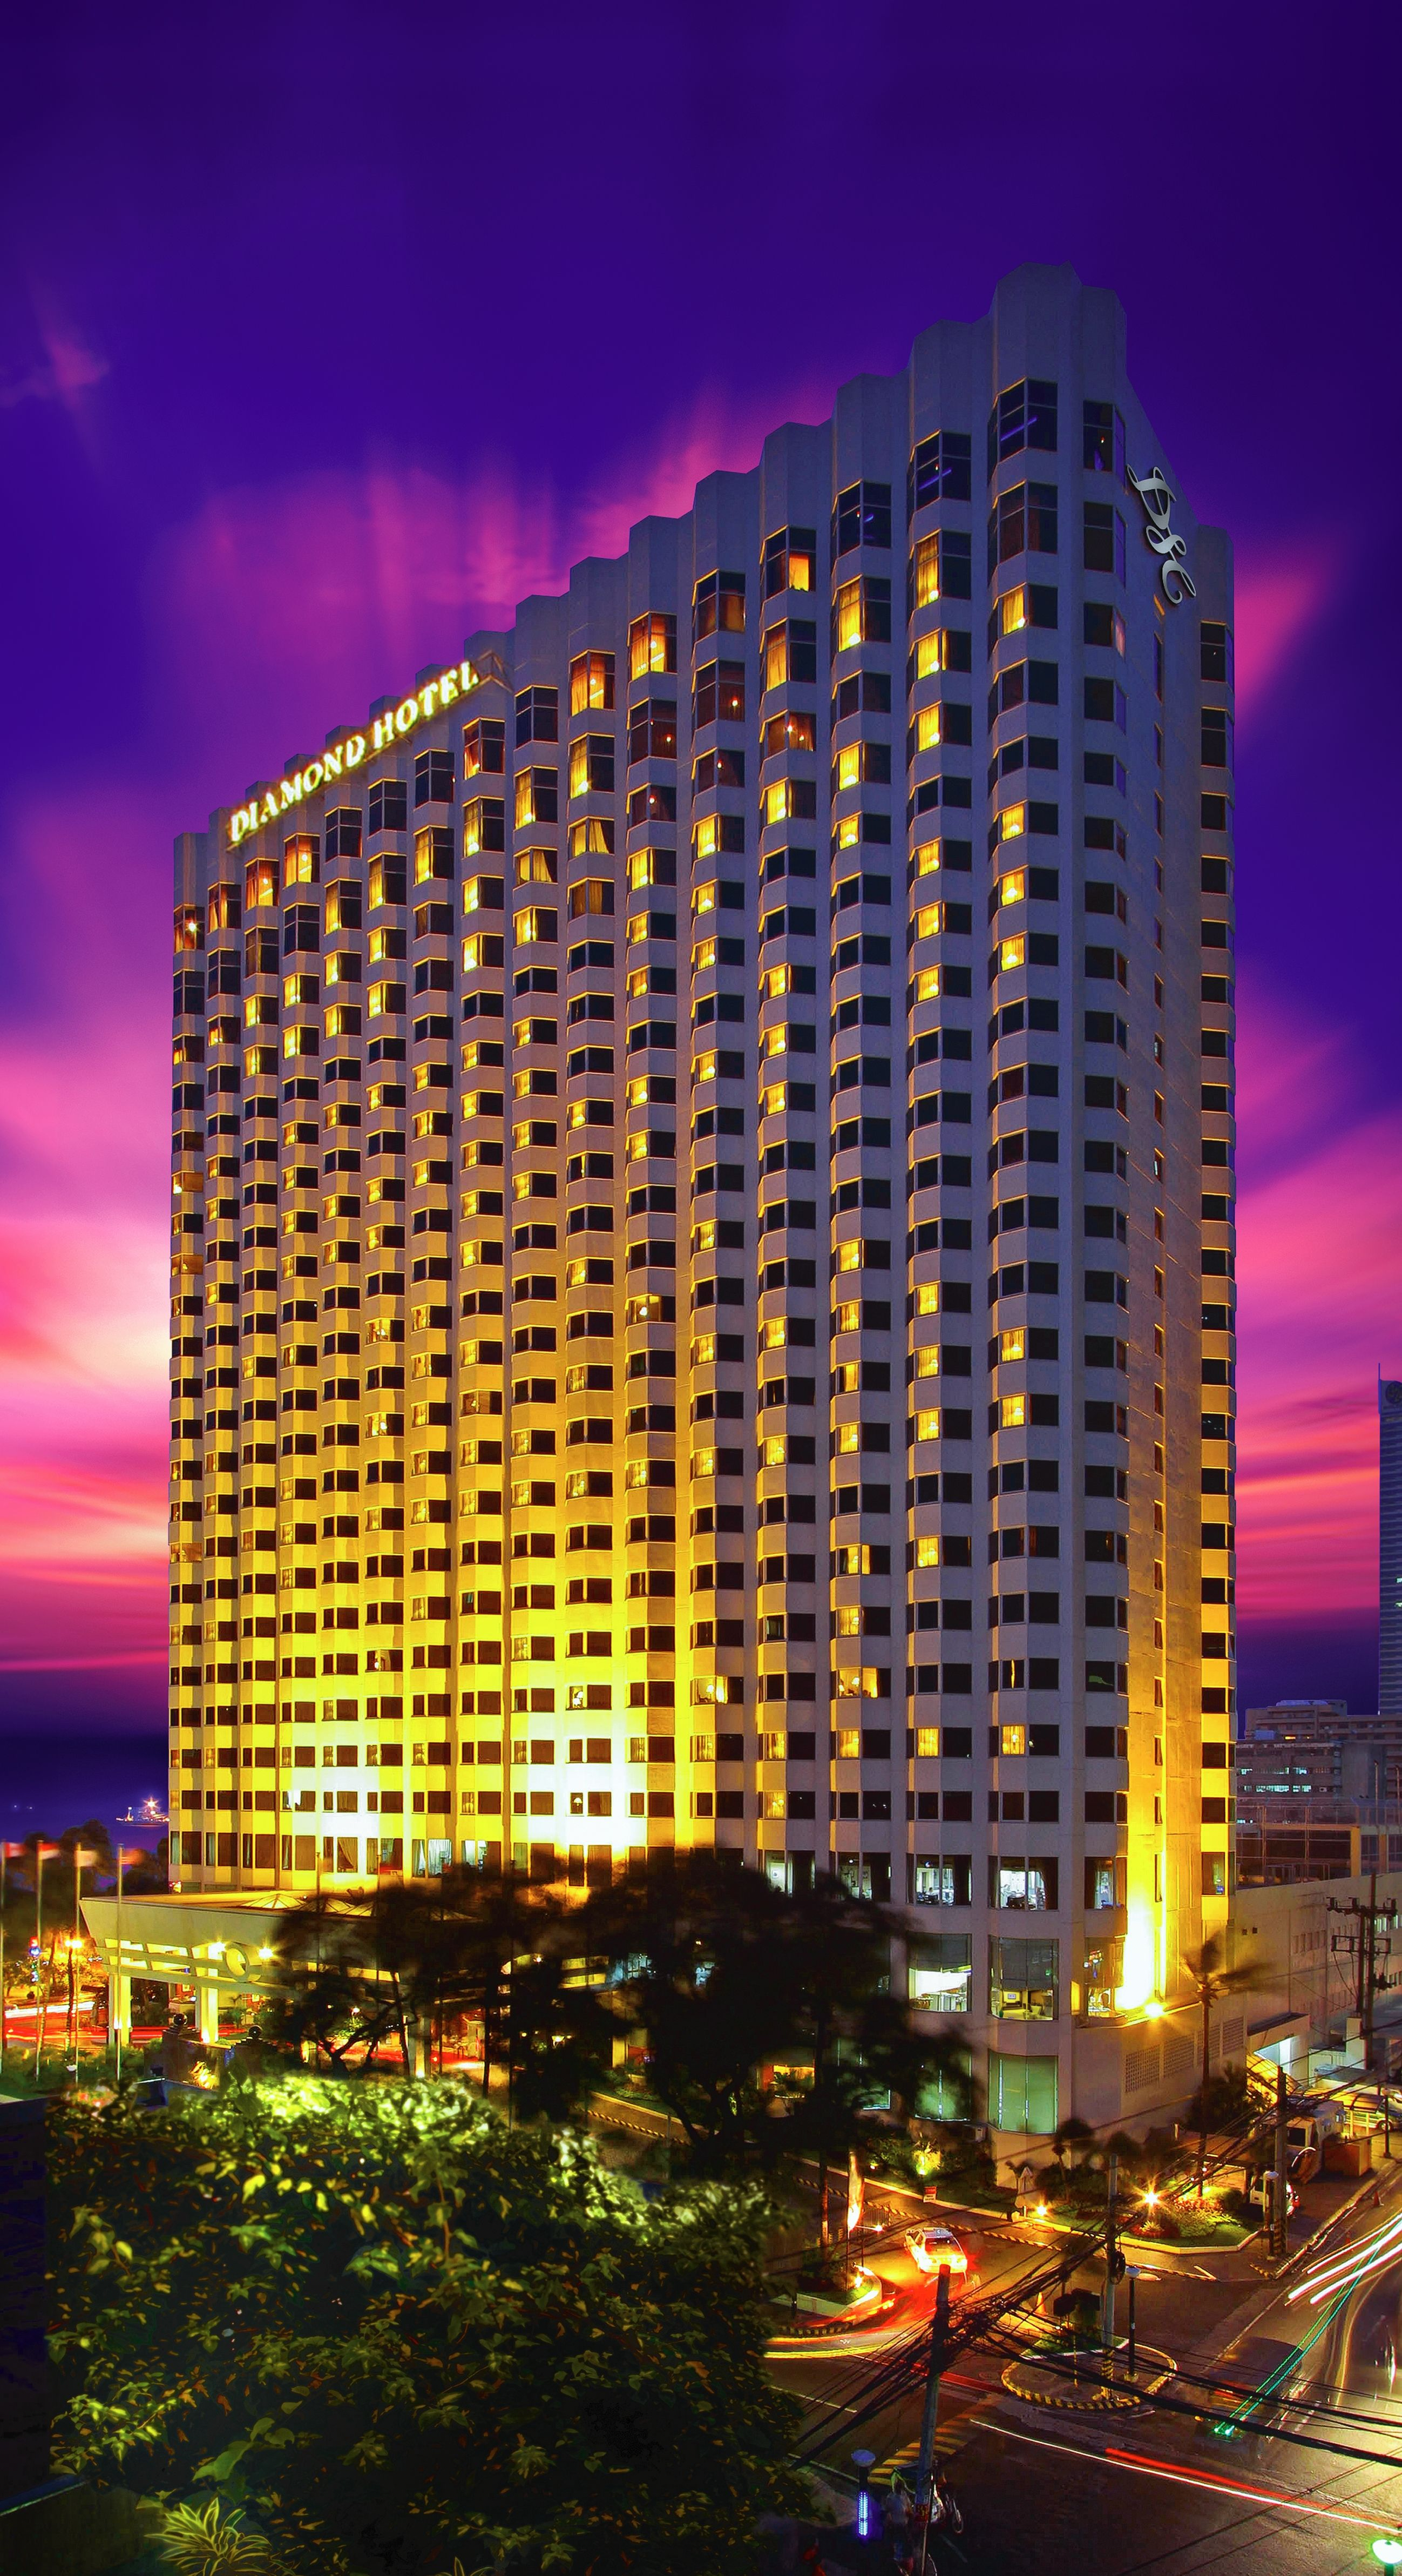 Diamond Hotel Philippines Facade At Dusk Diamond Hotel